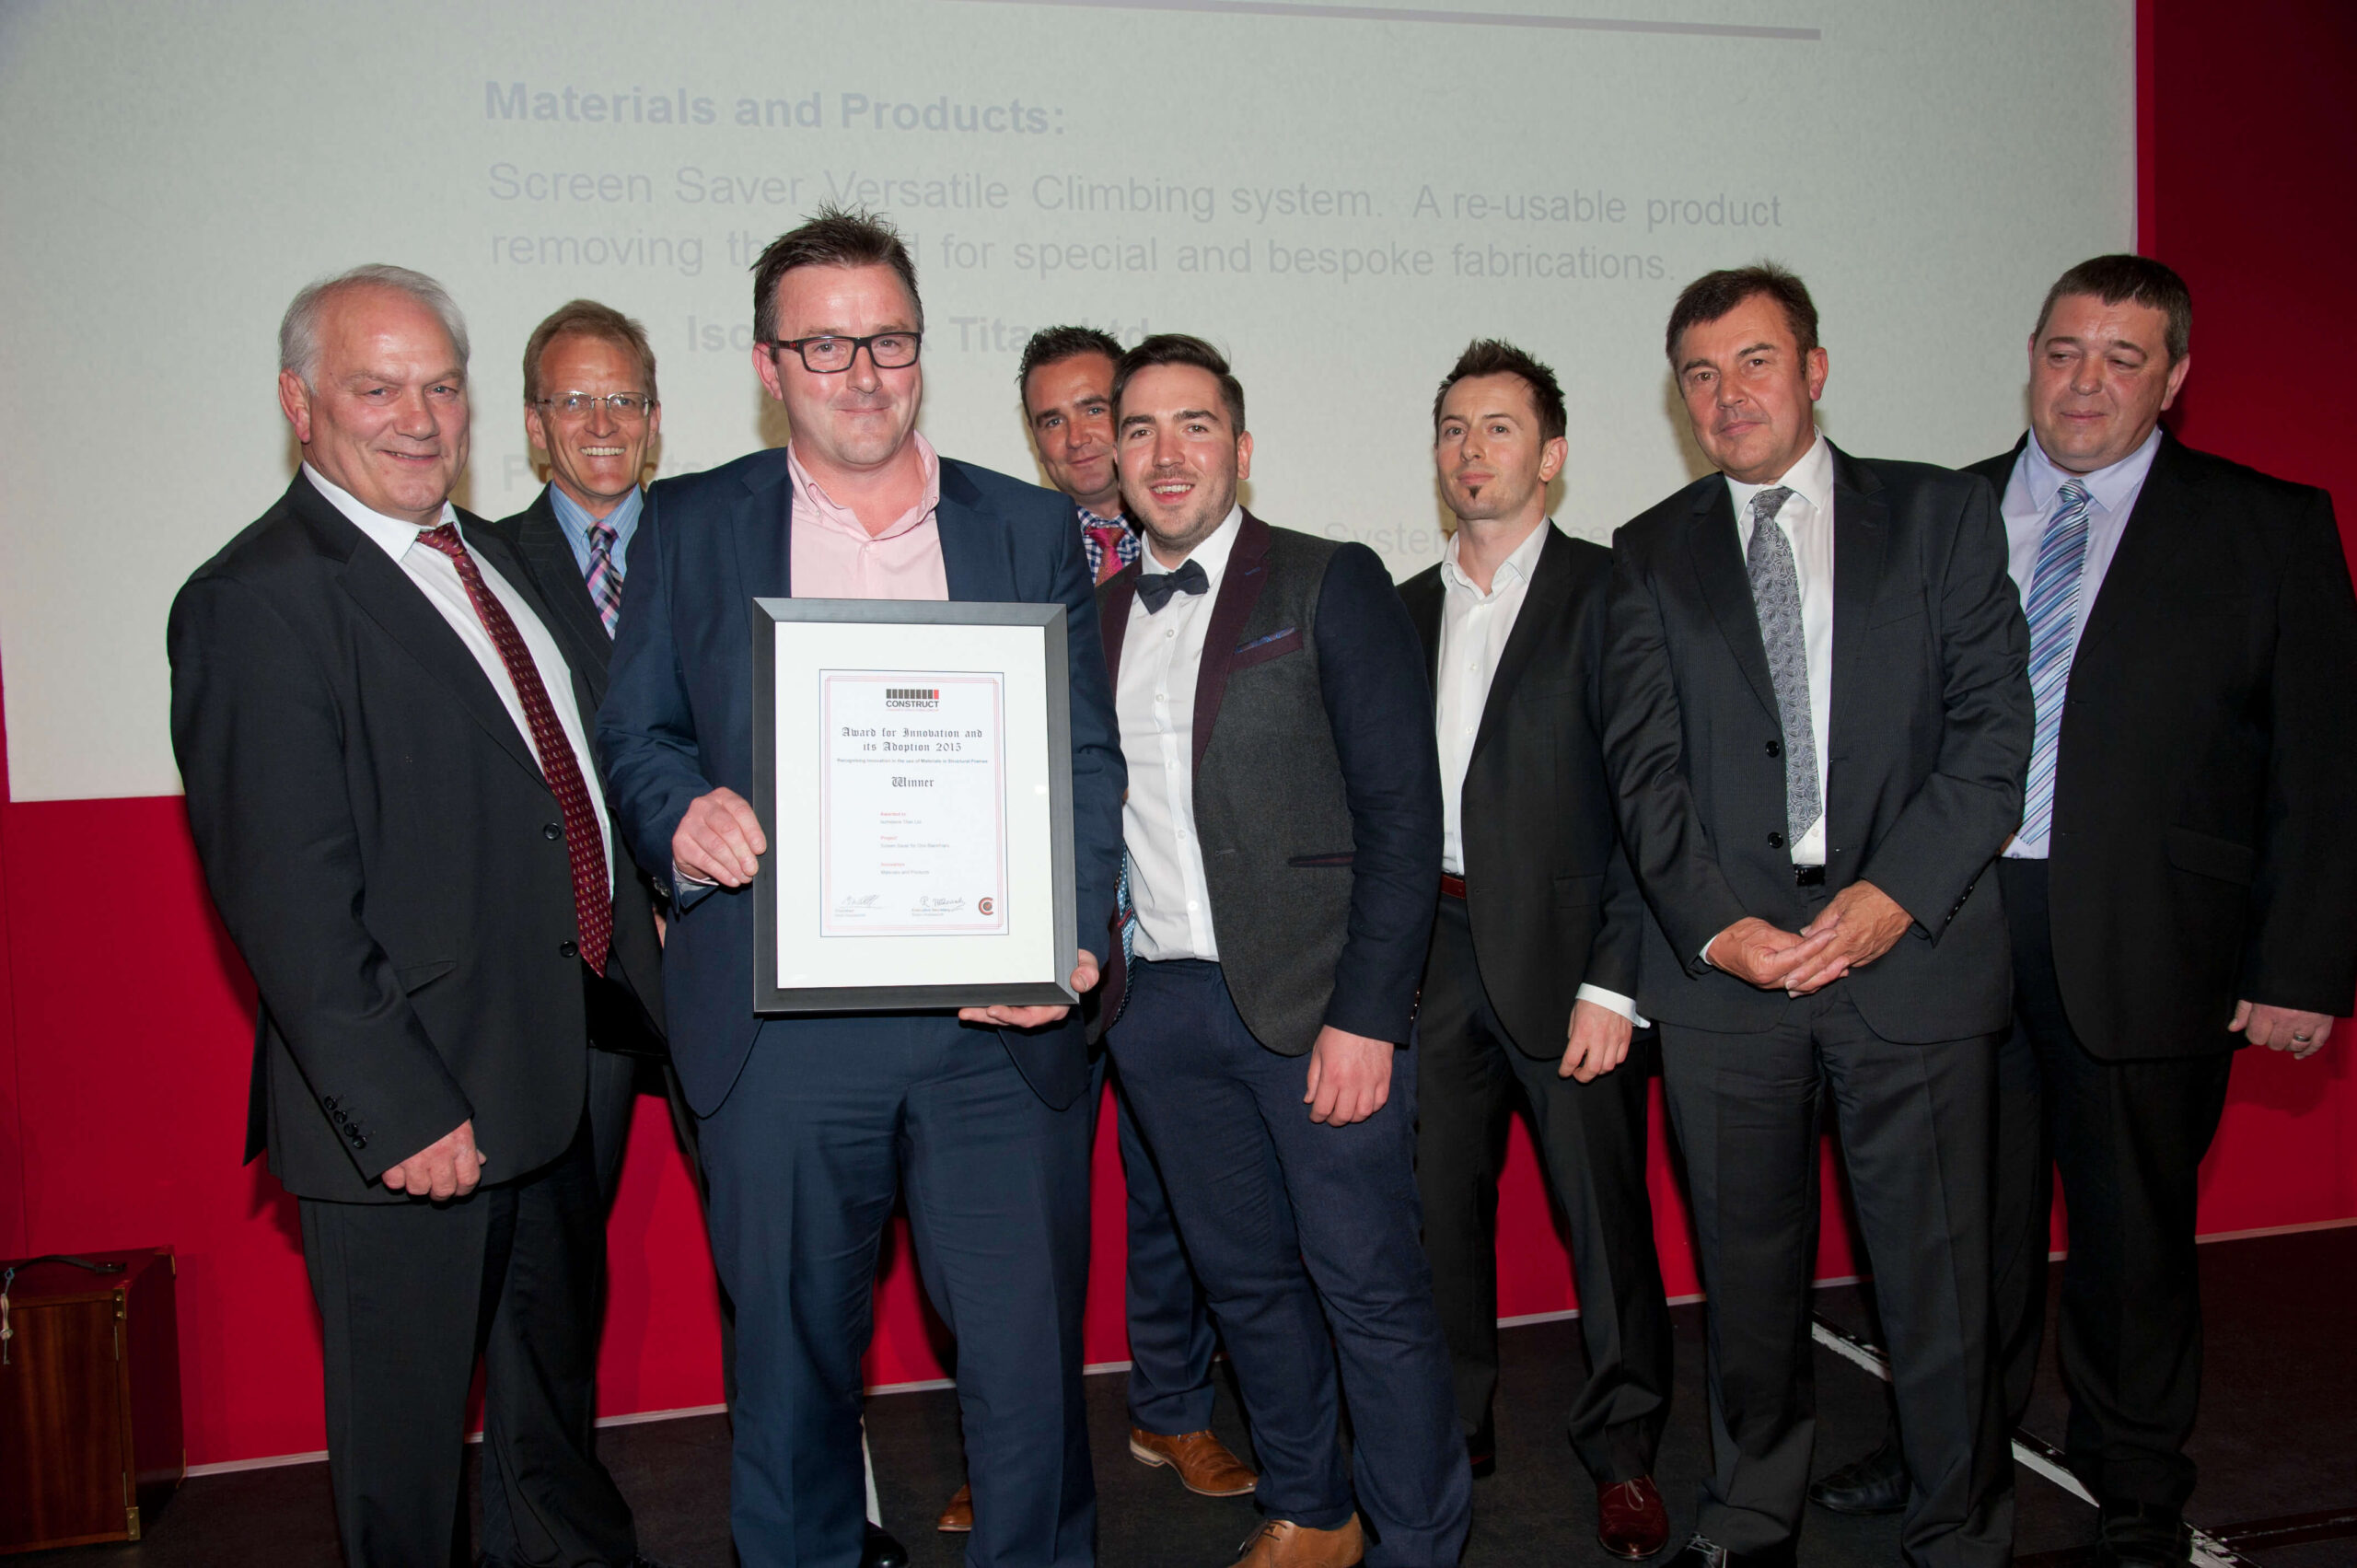 Eight men at CSG Awards event in suits, celebrating innovation award win